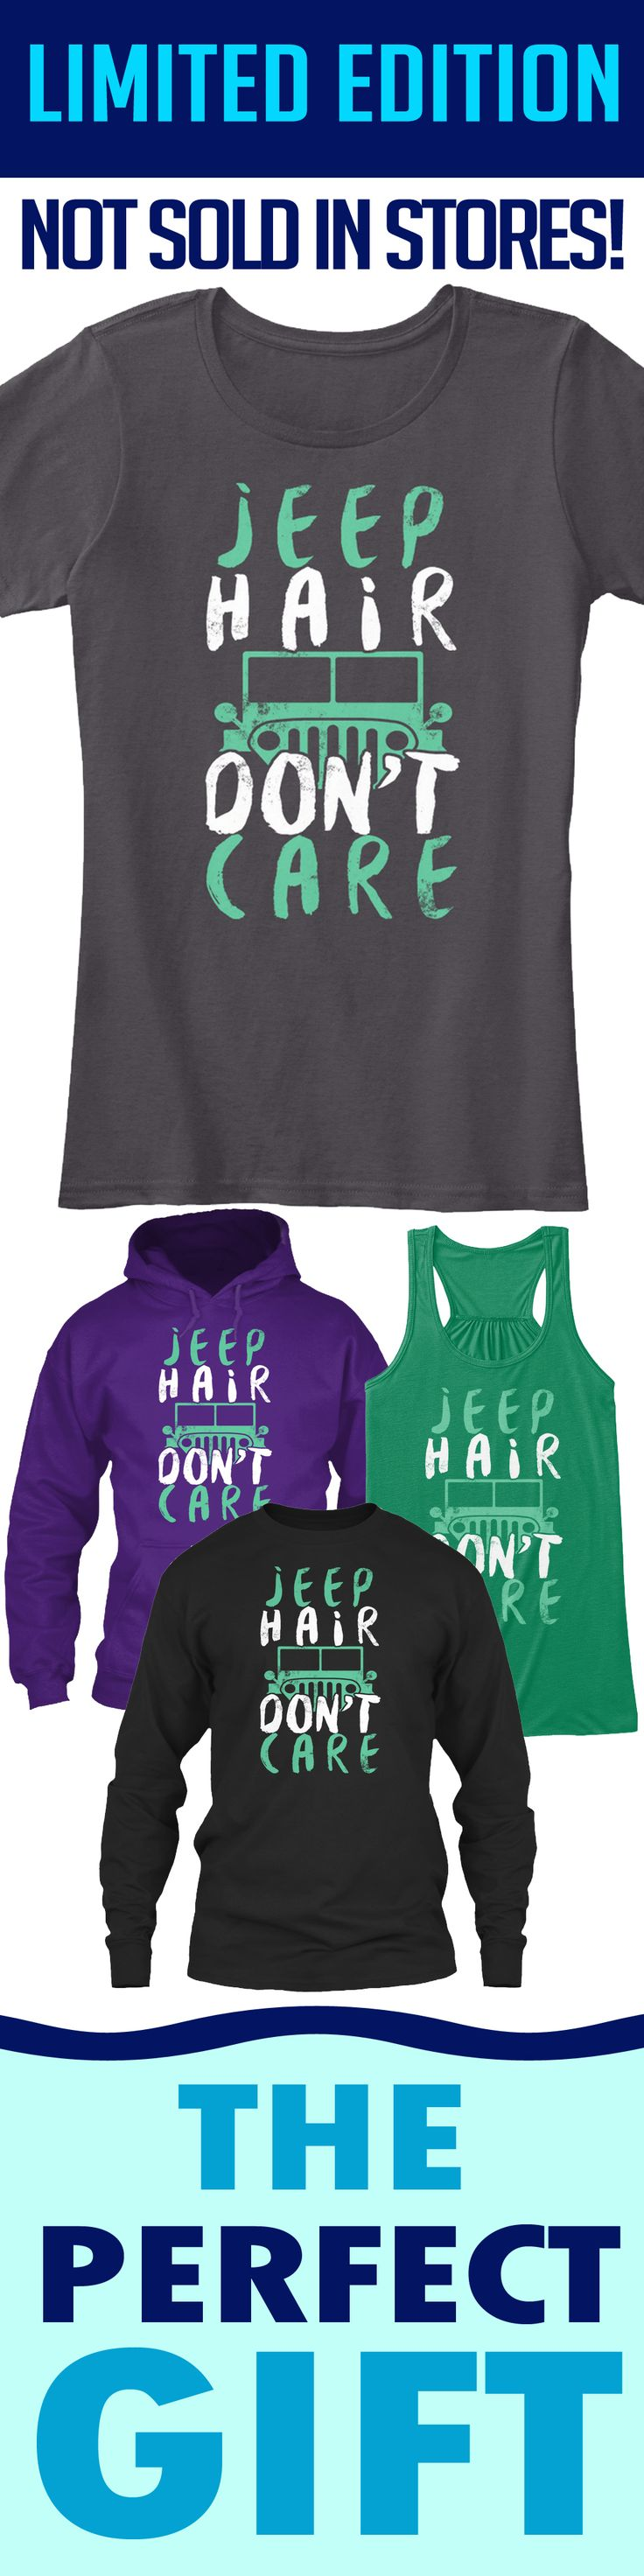 Jeep Hair Don't Care - Limited edition. Order 2 or more for friends/family & save on shipping! Makes a great gift!